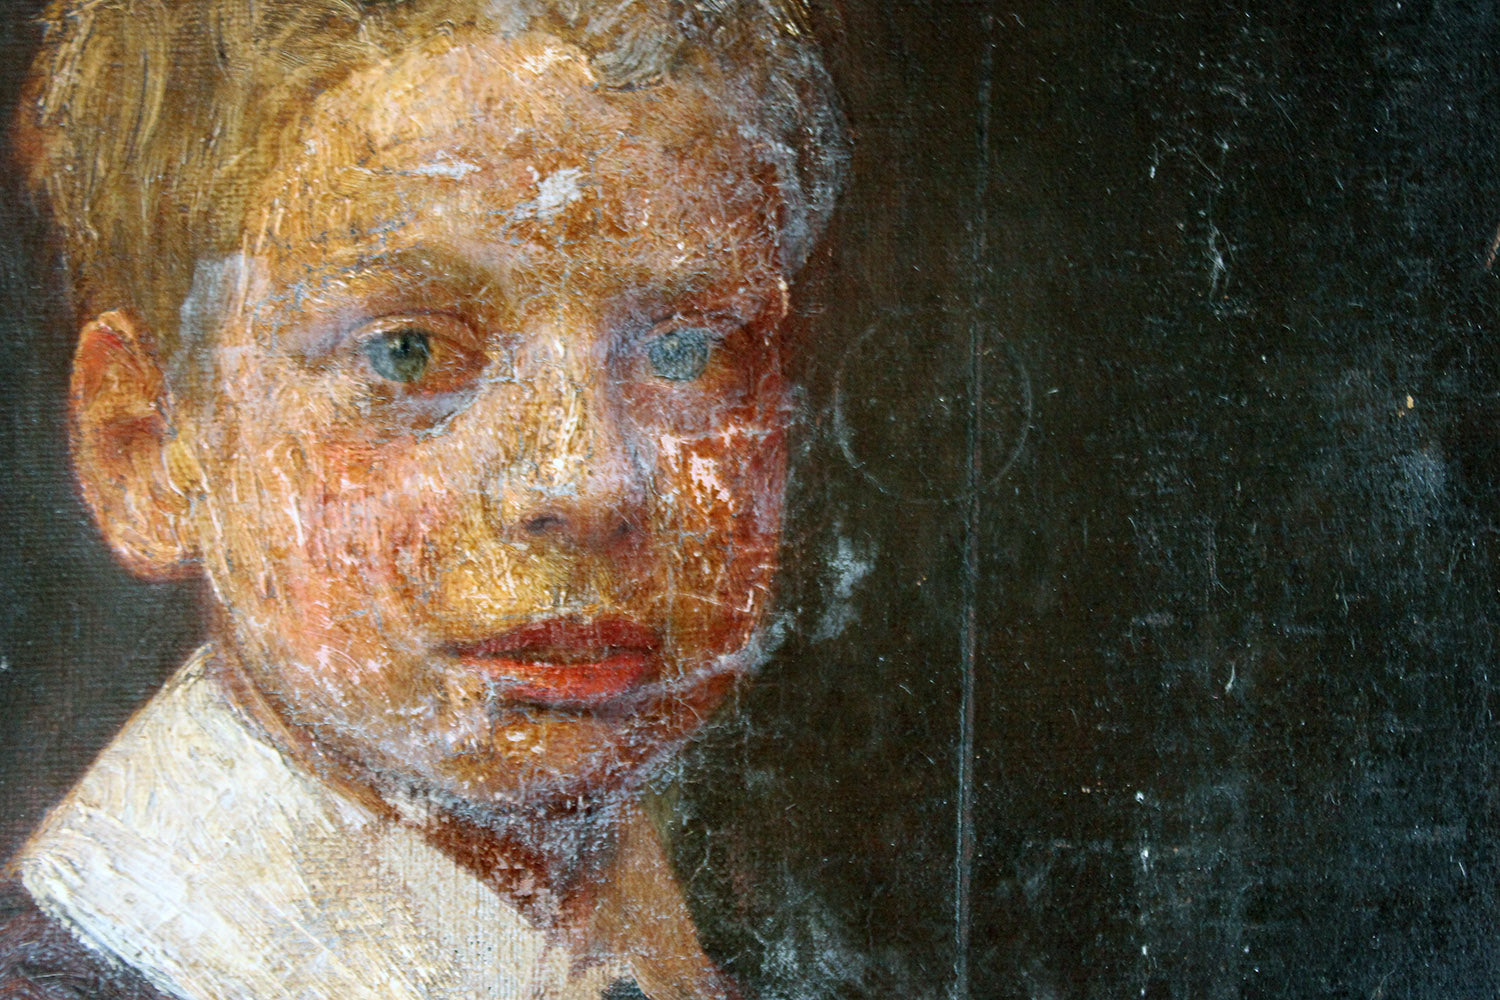 An English School Oil on Canvas Portrait of Master Ronald C. Pilsbury by Harry C. Pilsbury c.1900-10